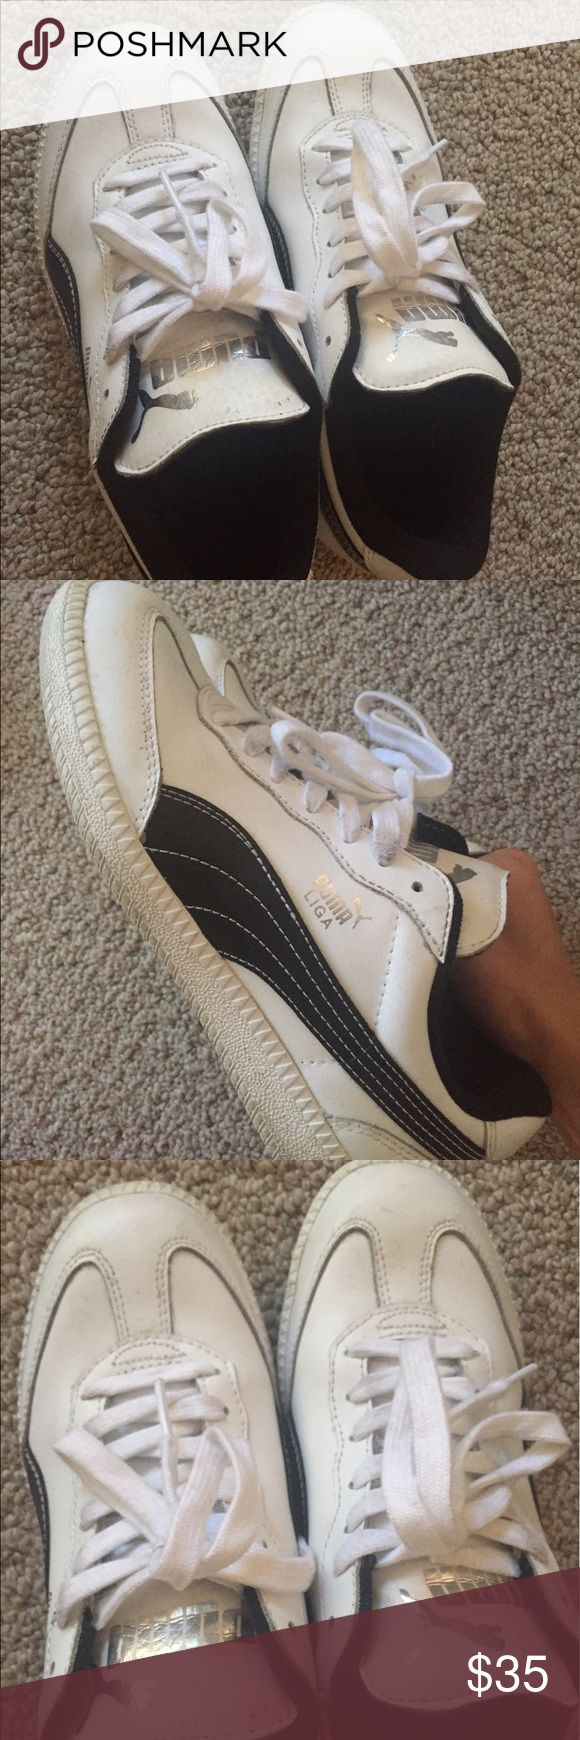 Puma Liga white and black leather size 5 I will give them a thorough cleaning before sending. Comes with original box Puma Shoes Athletic Shoes